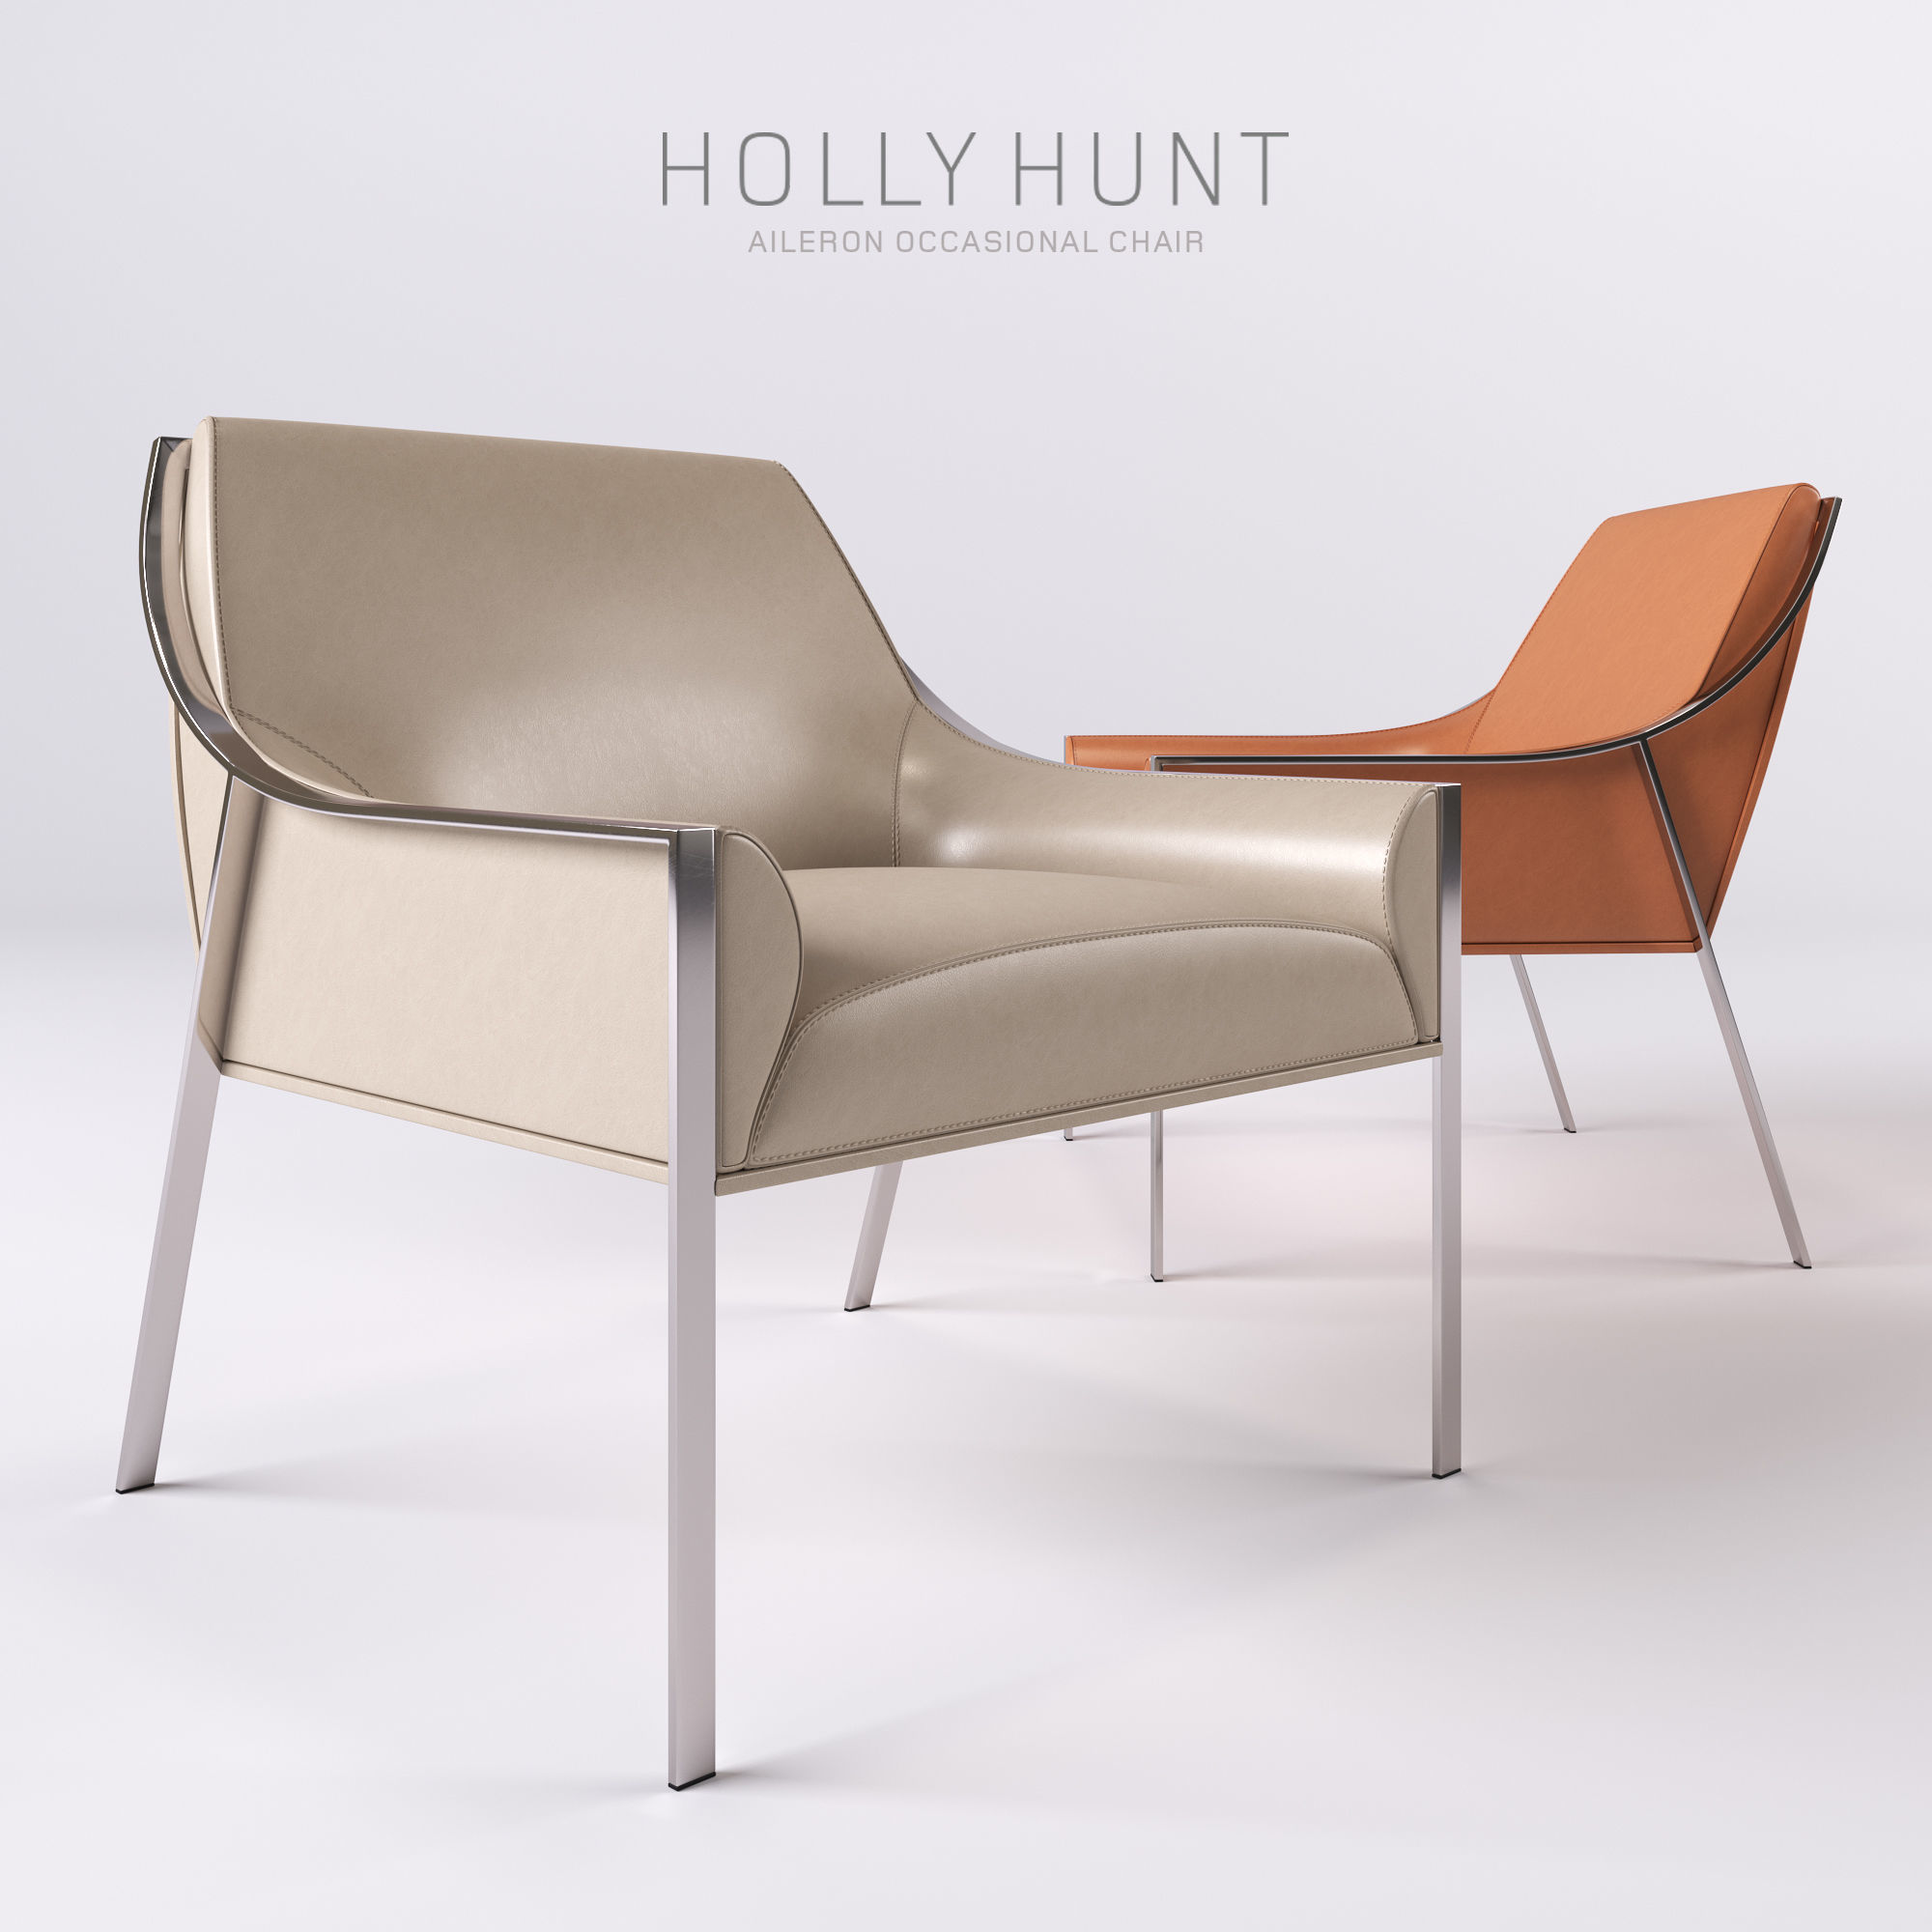 3d holly hunt aileron occasional chair cgtrader